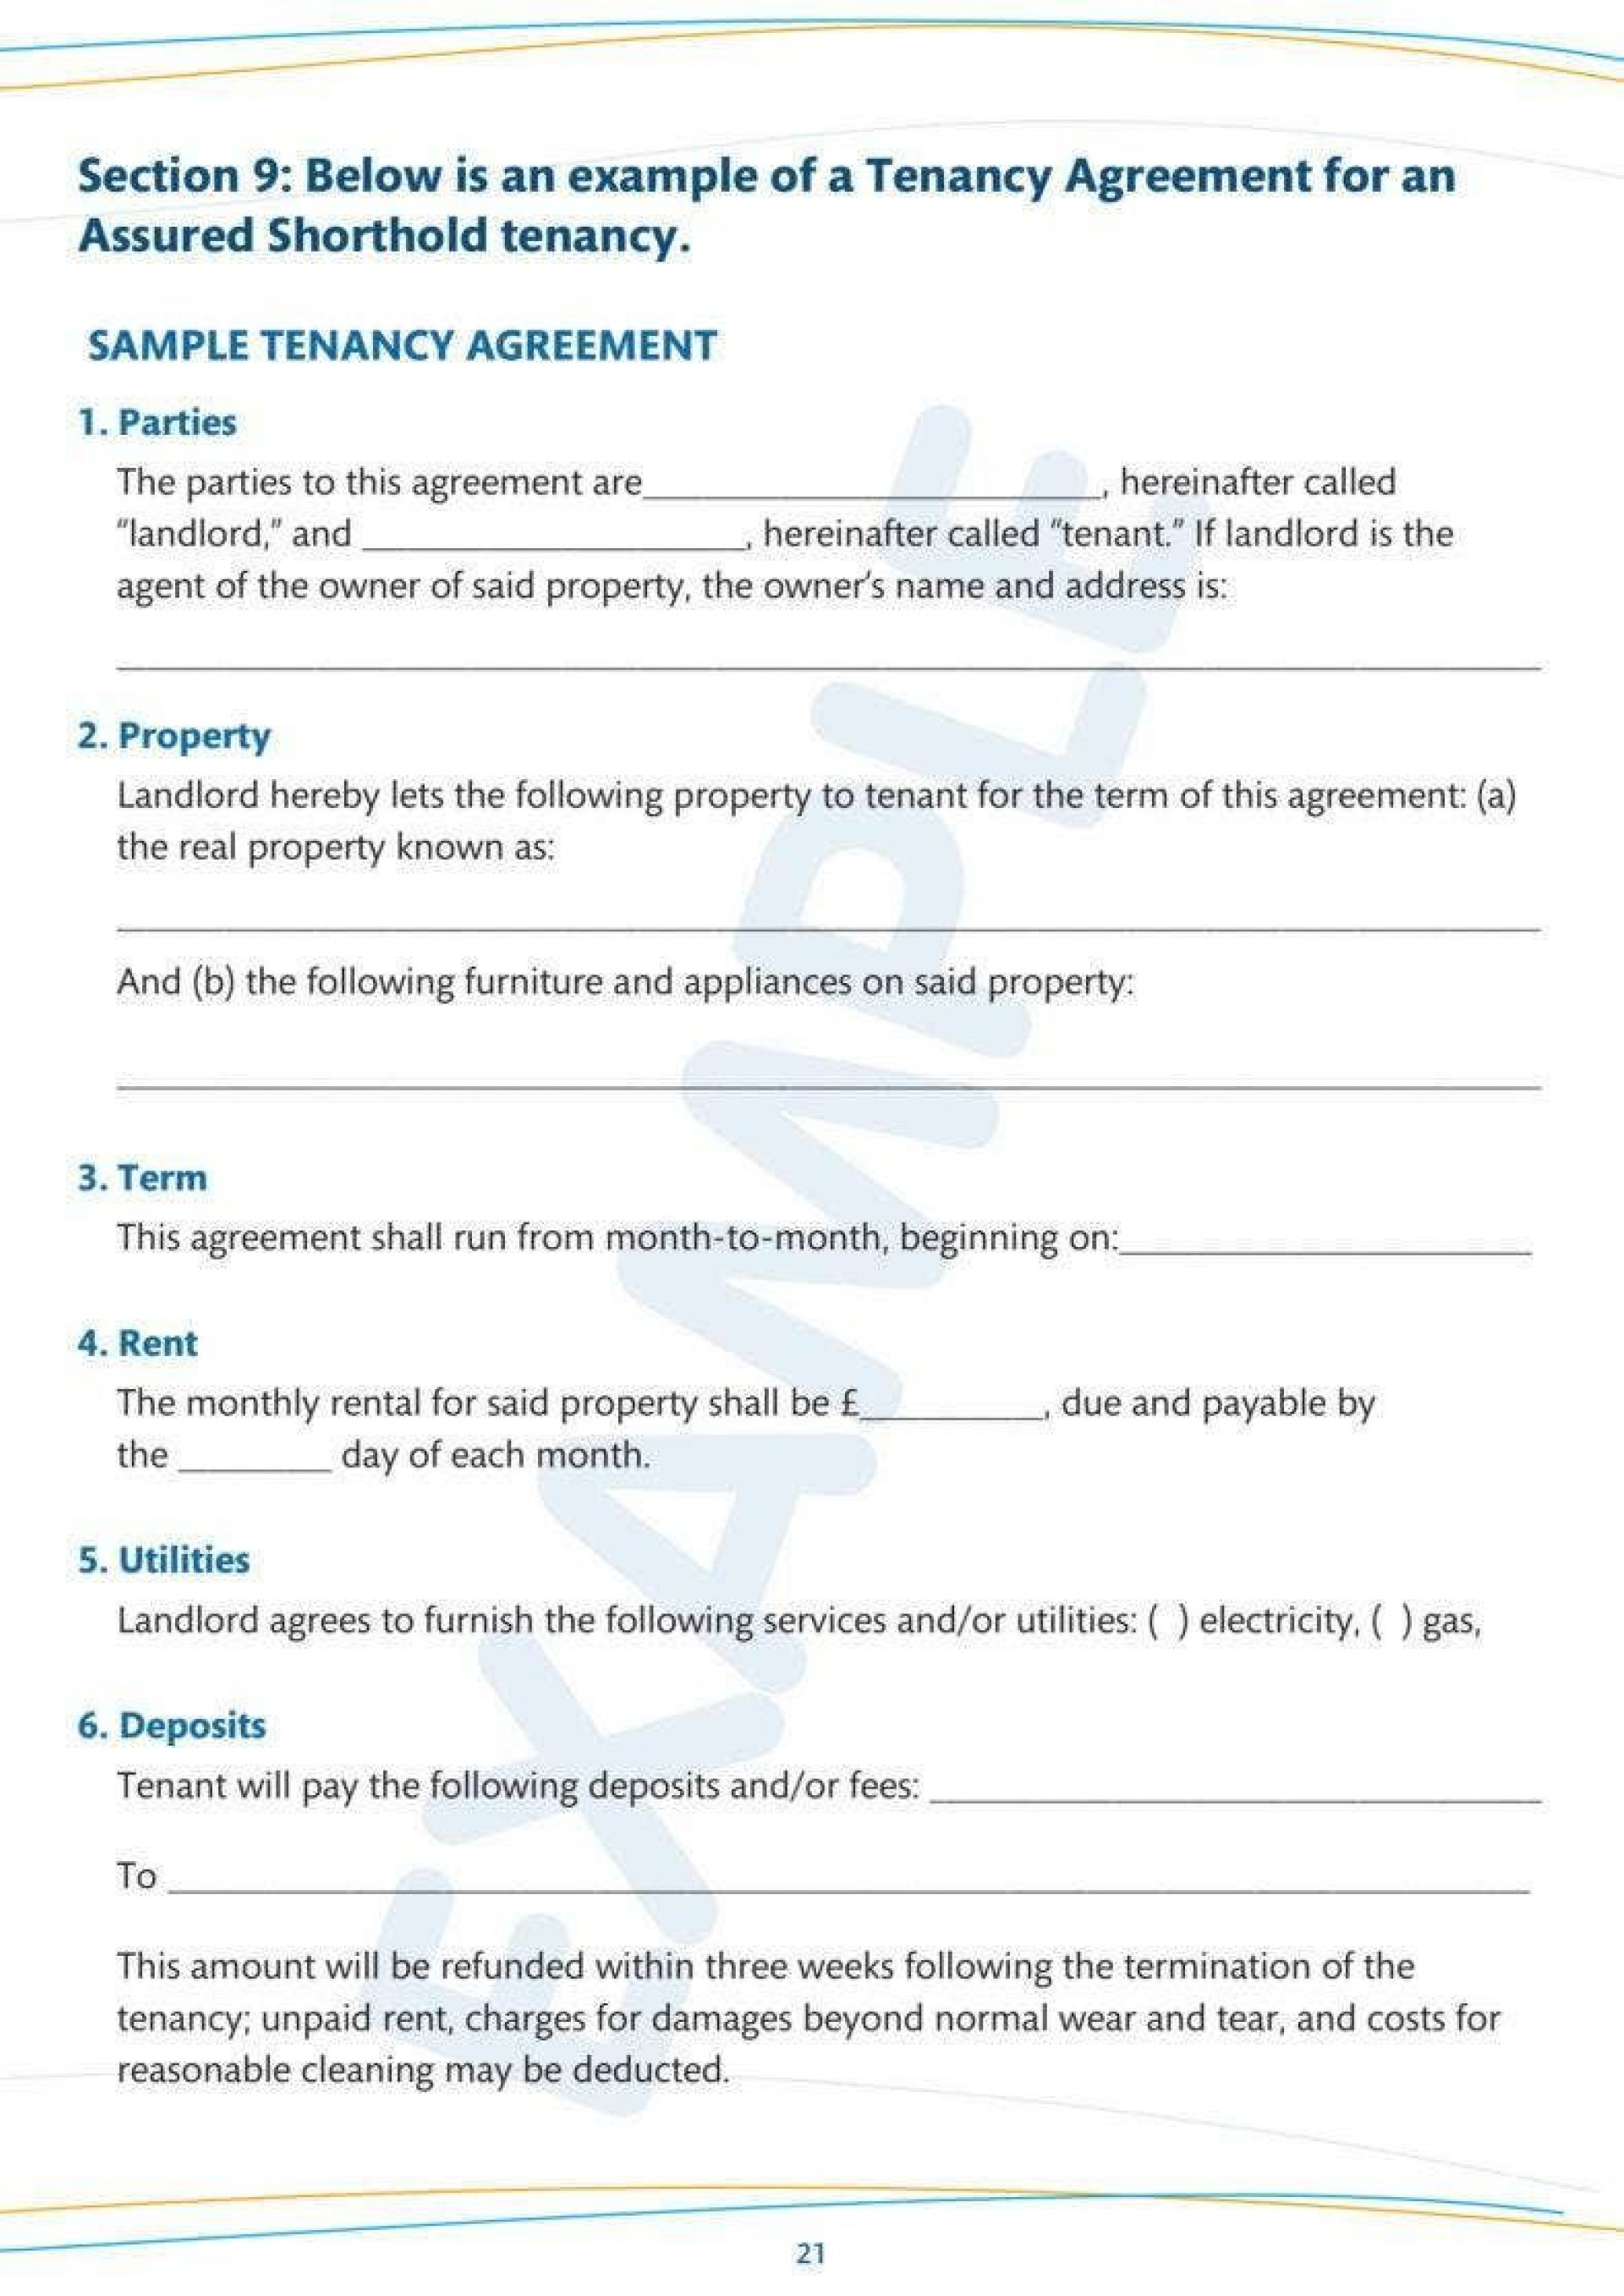 007 Fearsome Tenancy Agreement Template Word Uk Example  Free Room Rental 2020 Simple1920